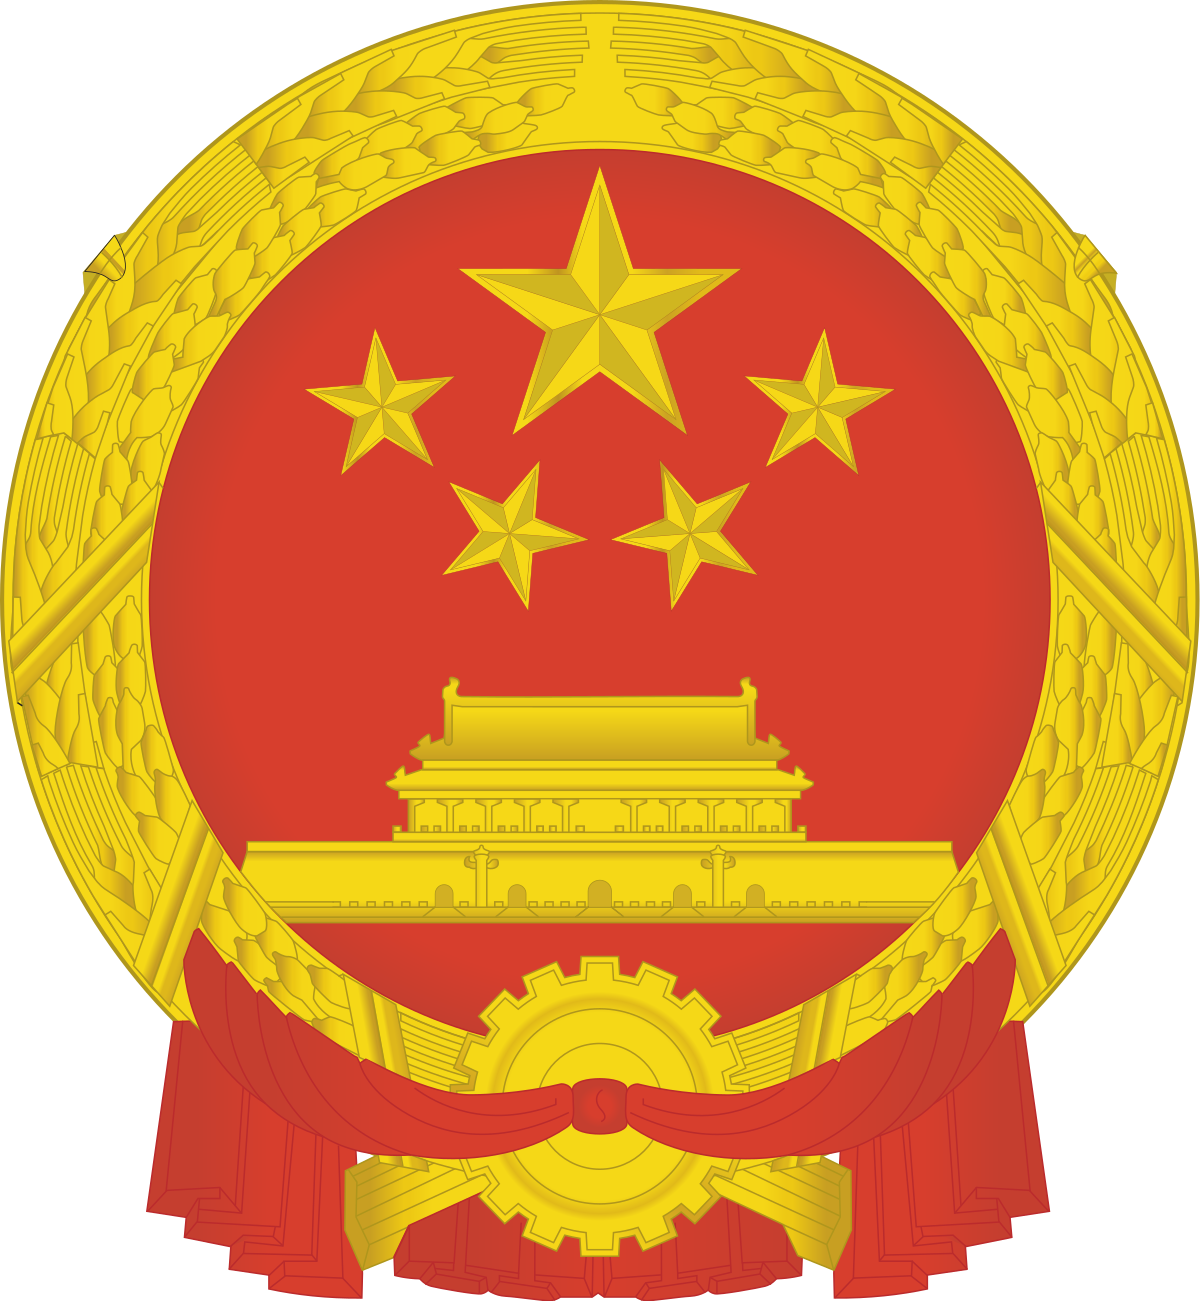 Red and yellow clipart sun asian jpg royalty free library Government of China - Wikipedia jpg royalty free library